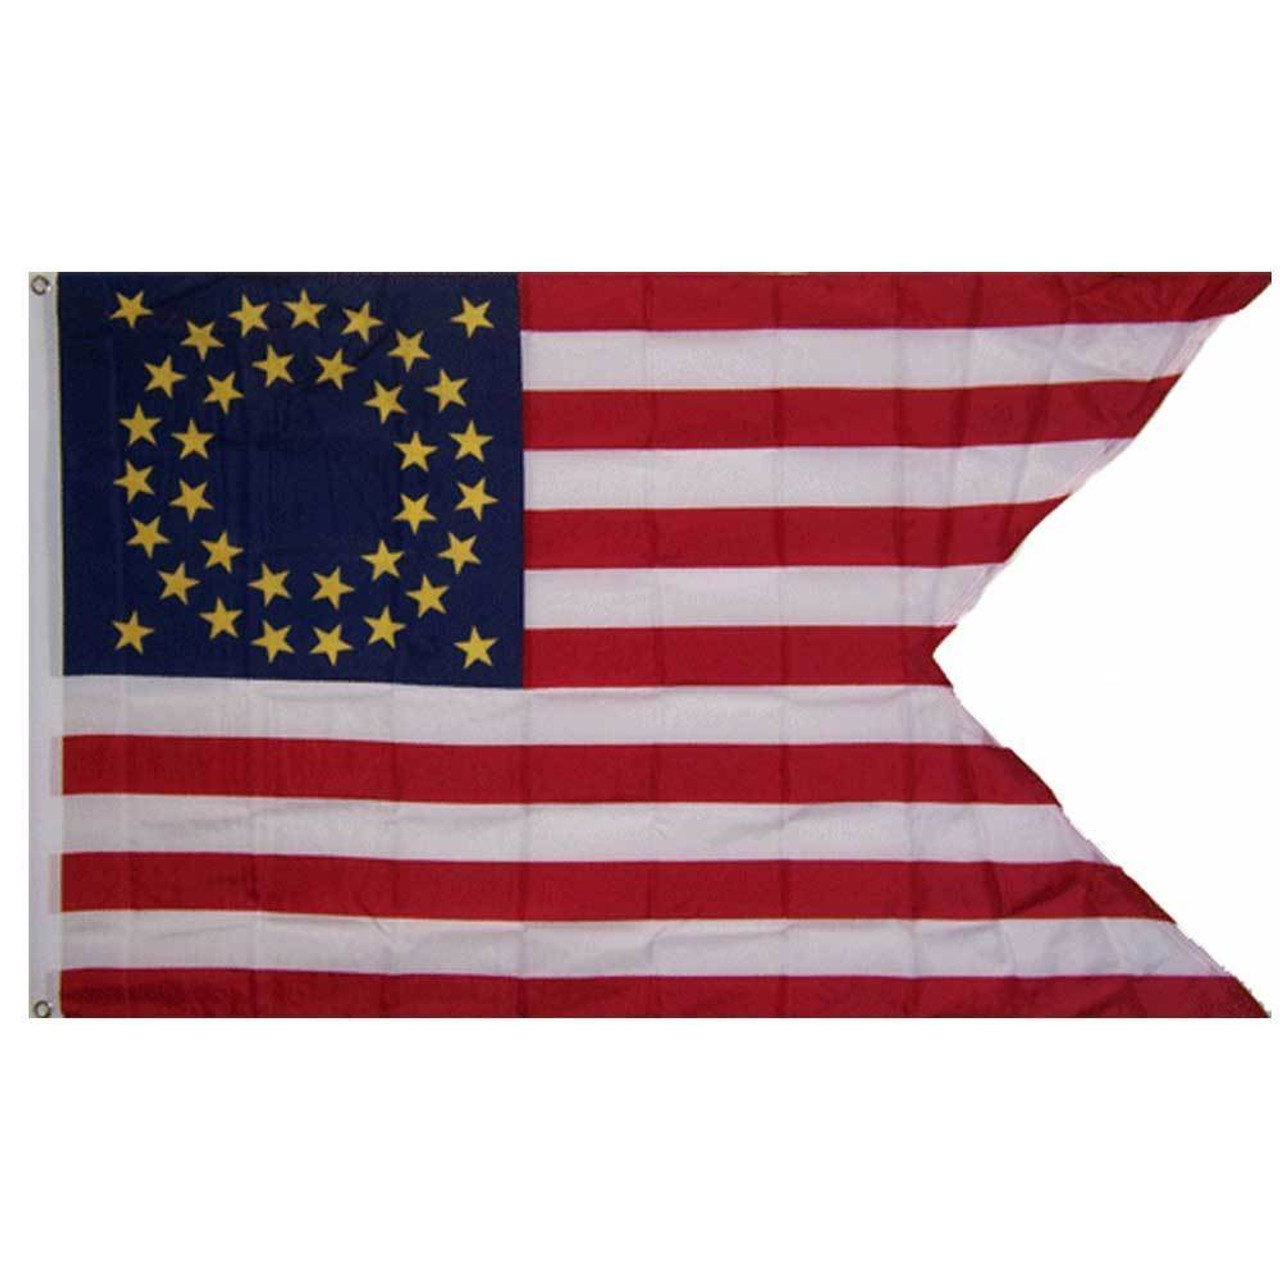 7th Cavalry Guidon Flag